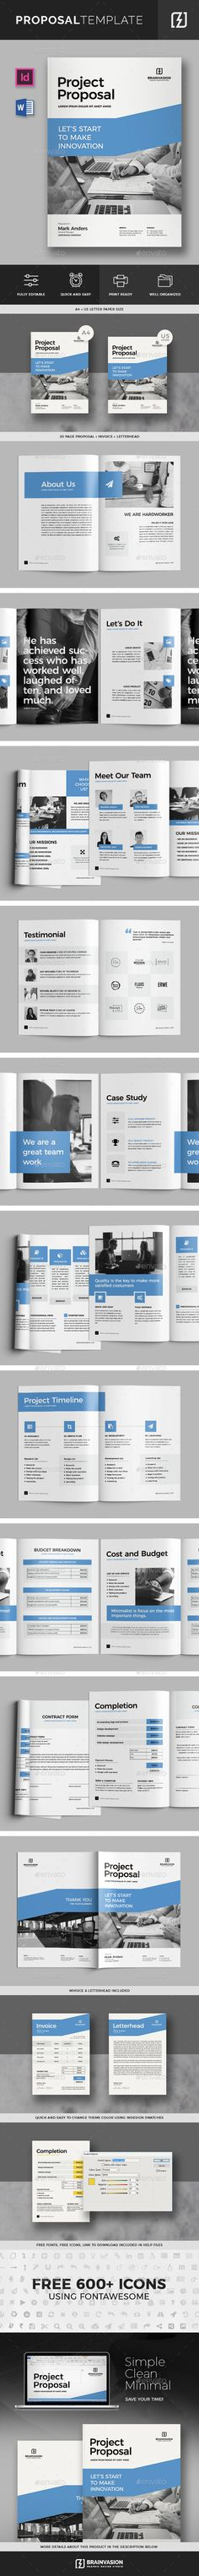 Proposal Templates, Stationery and Proposals - free project proposal template